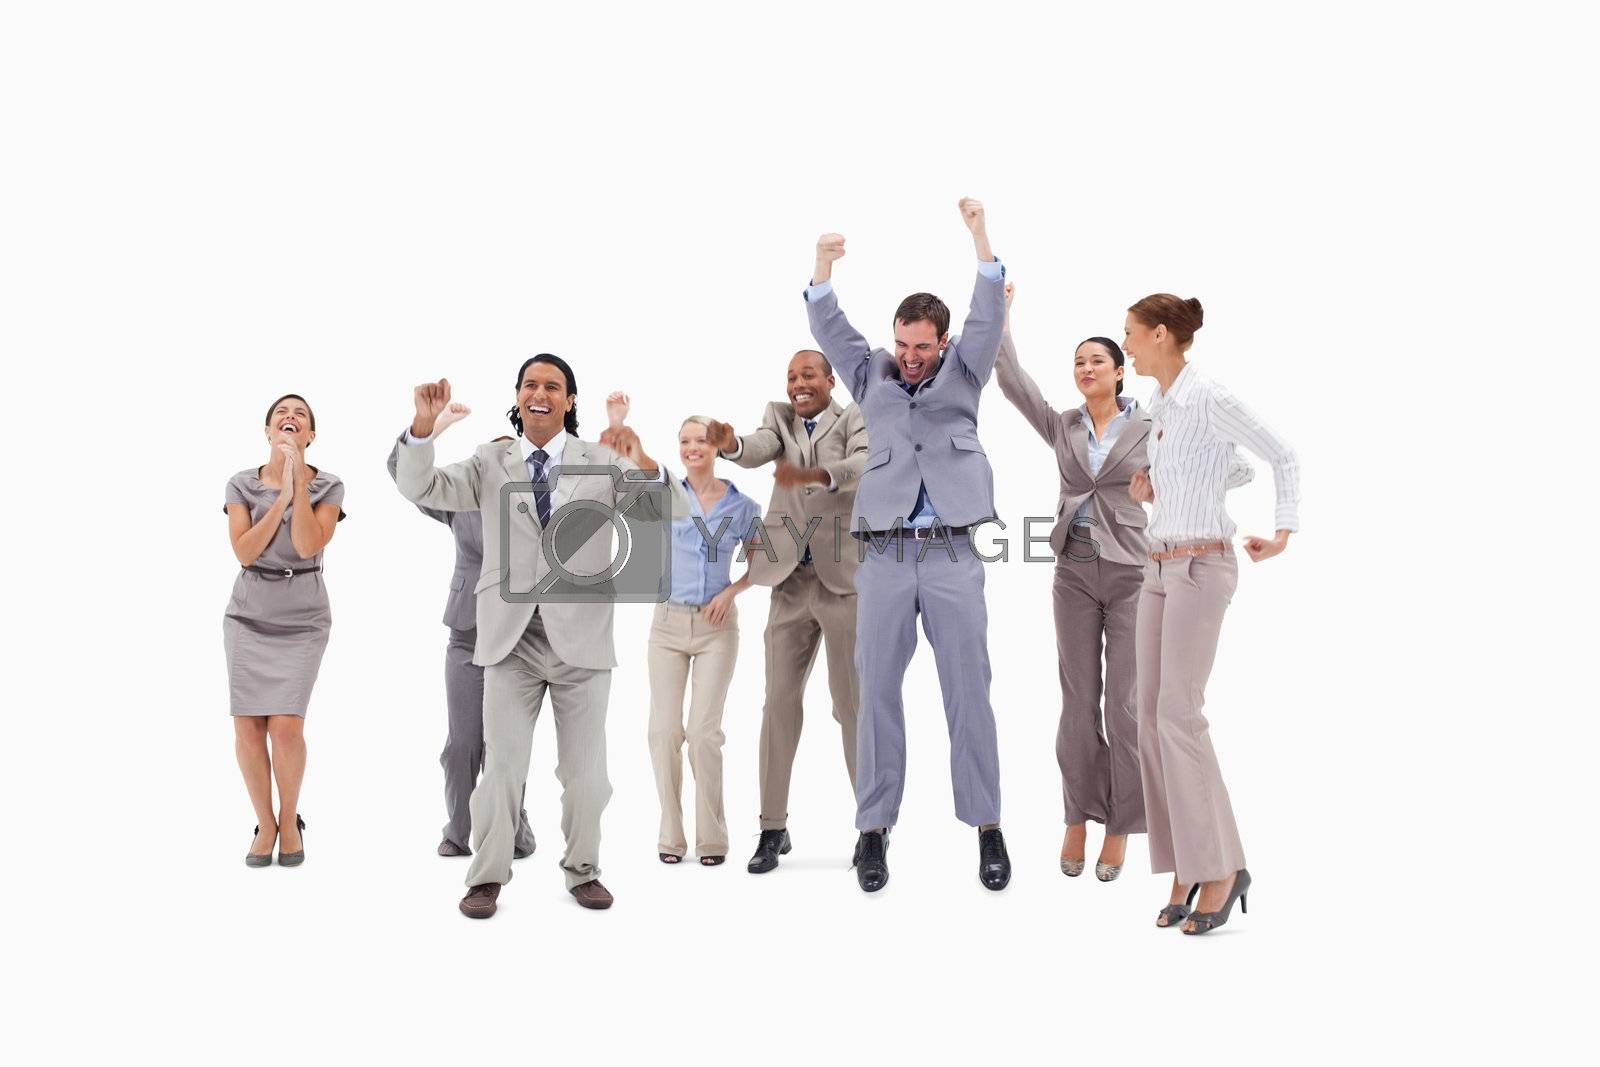 Very enthusiast people jumping and raising their arms against white background